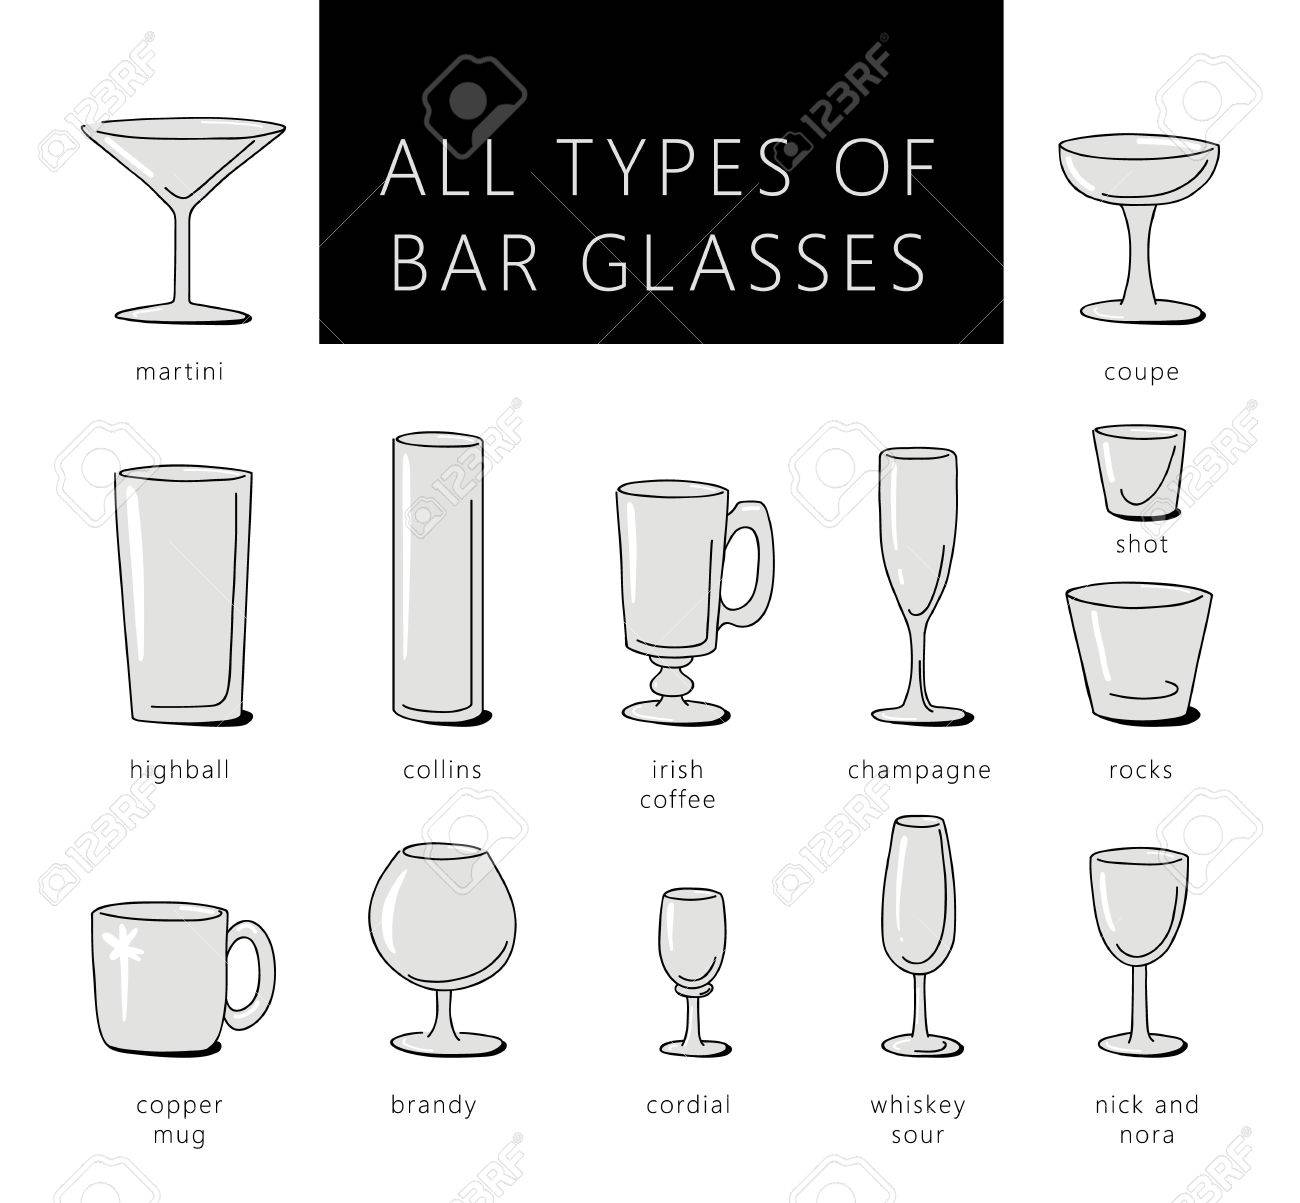 bar glasses vector icons set vector types of barware glasses  - bar glasses vector icons set vector types of barware glasses silhouettesguide to various